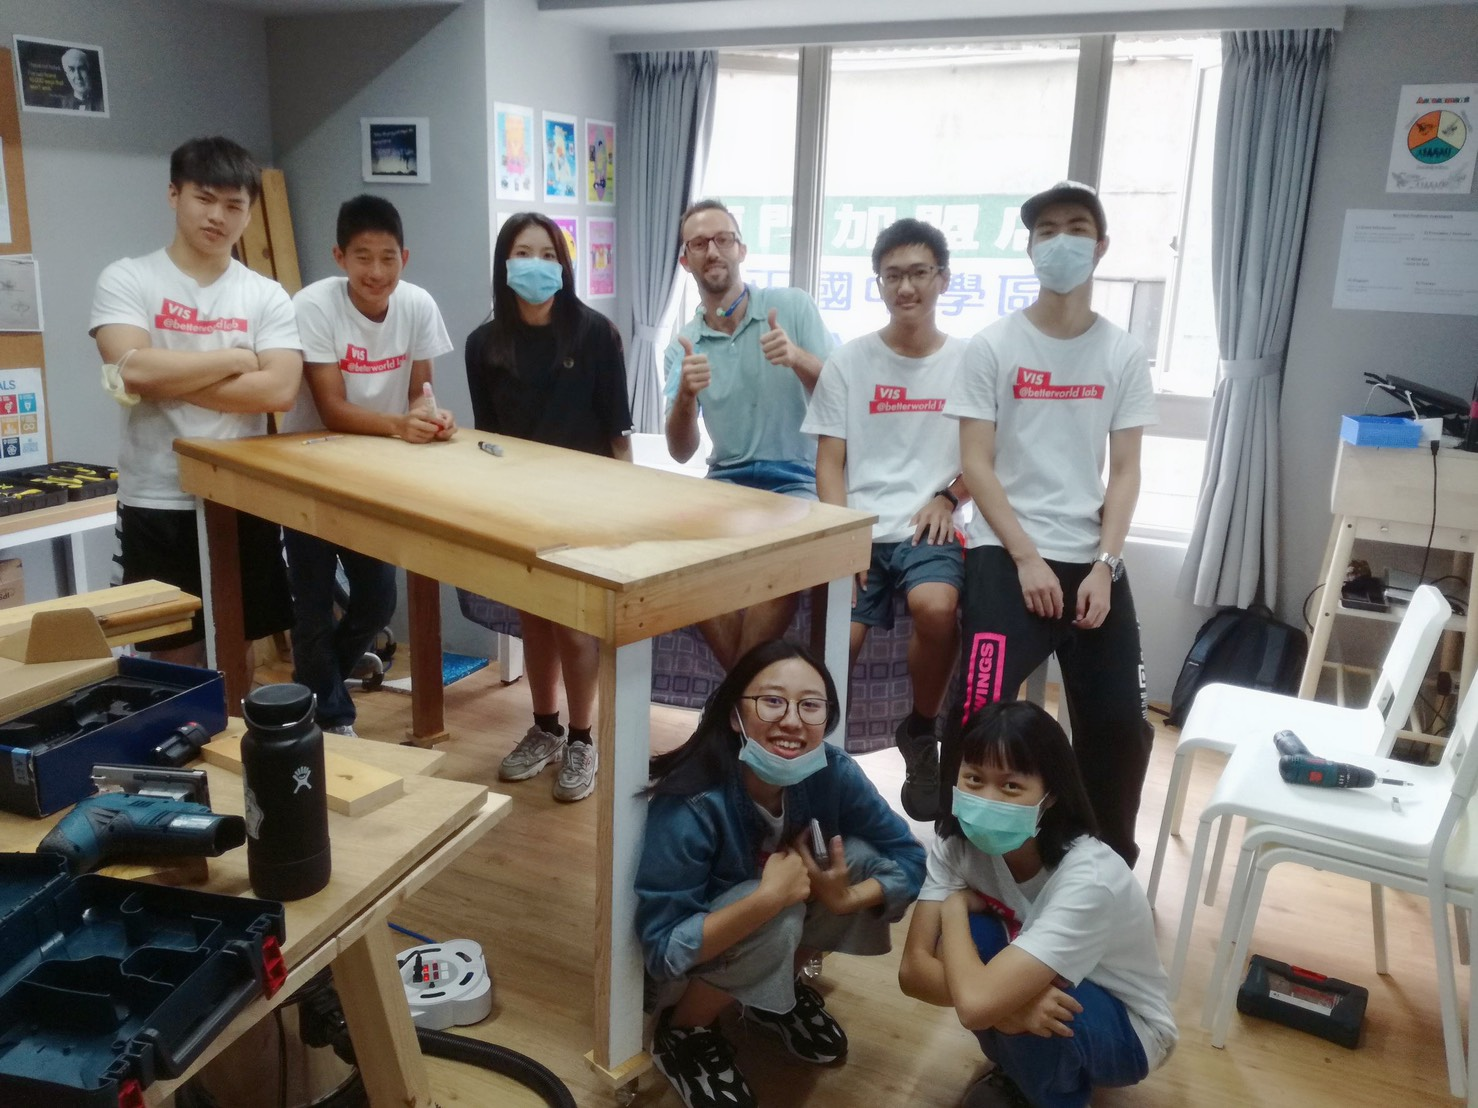 Teaching English and Living in Taiwan Jobs Available 教學工作, VIS@betterworld lab Experimental Education Institution Calling out for Progressive Educators! Math, Science, Art, English Teachers image